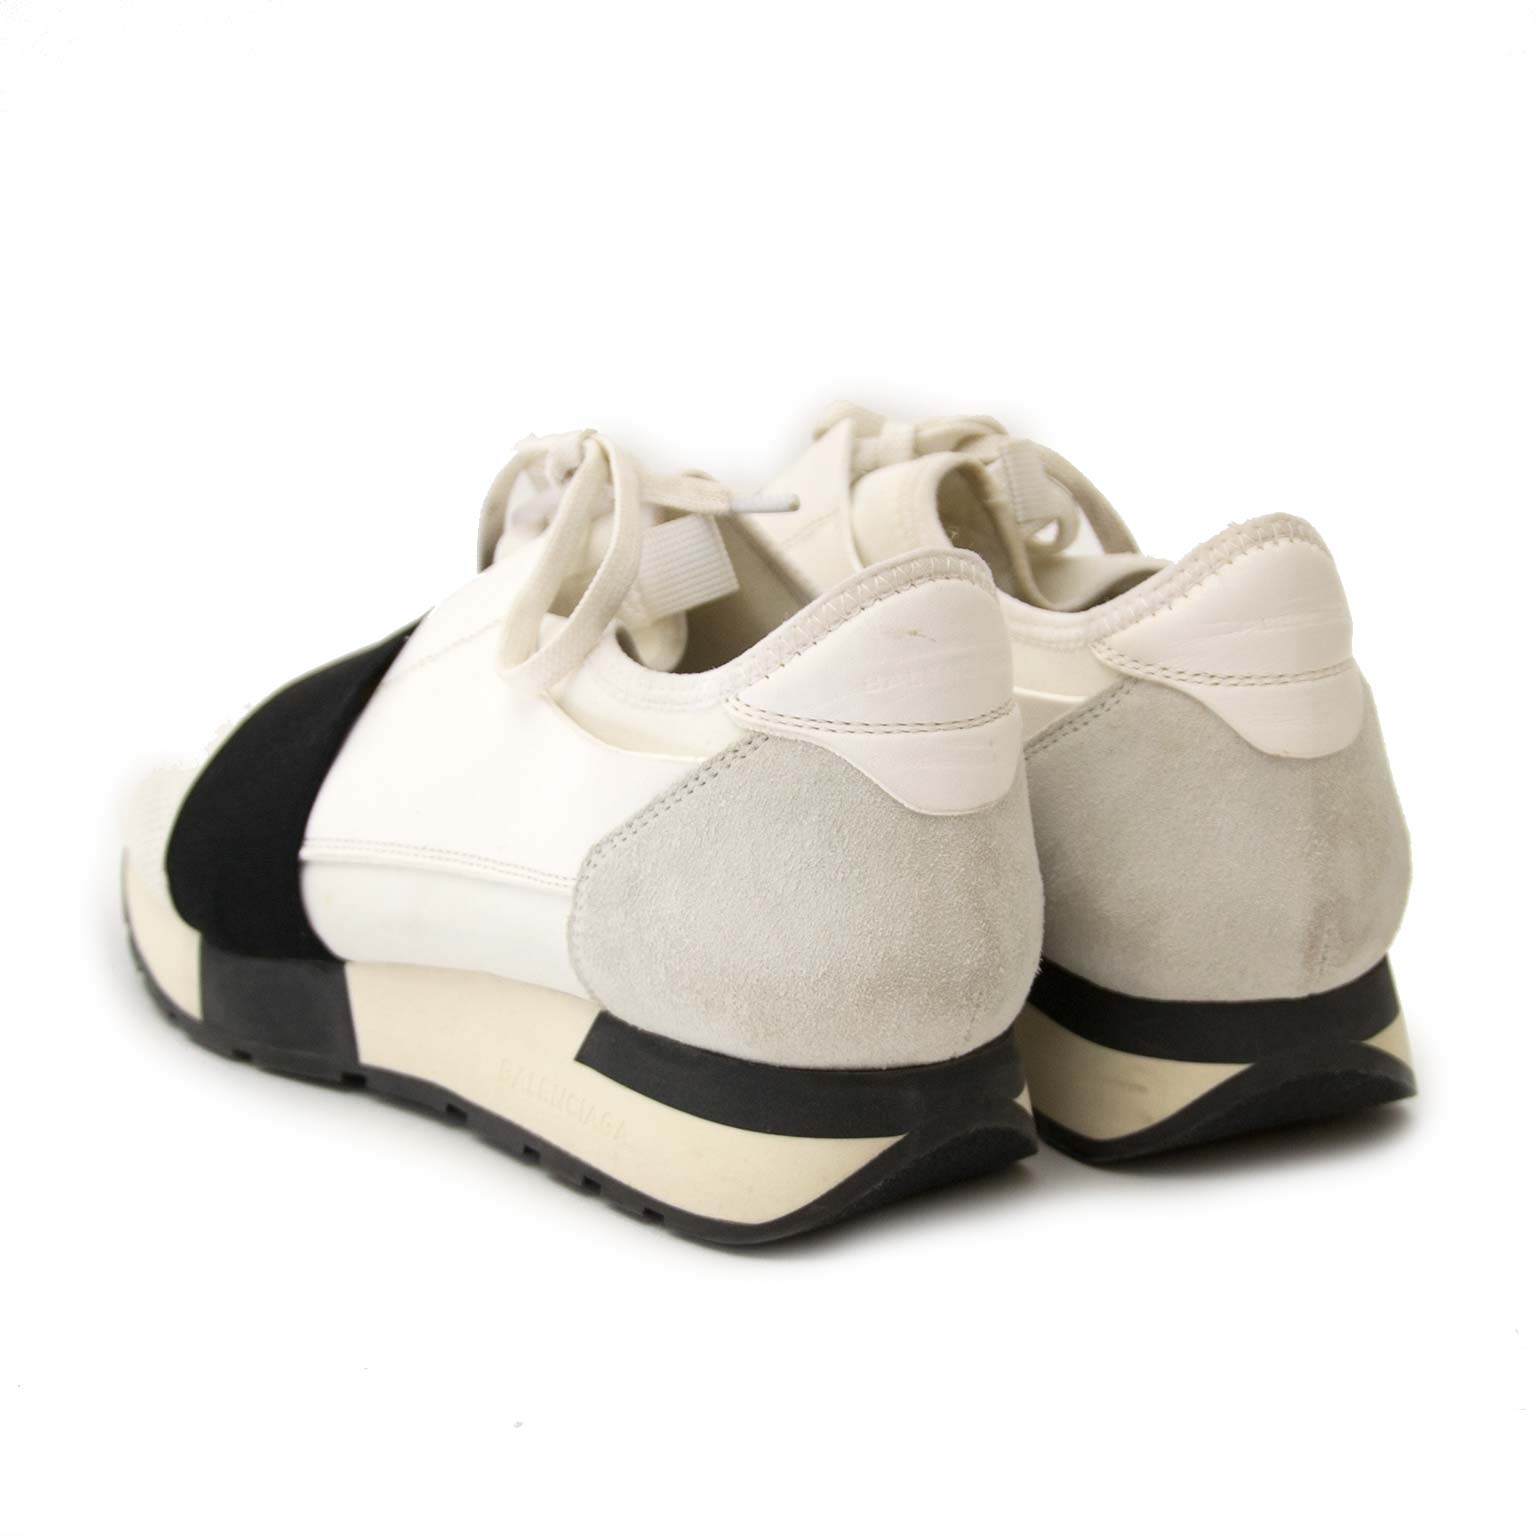 balenciaga race runners white and black now for sale at labellov vintage fashion webshop belgium